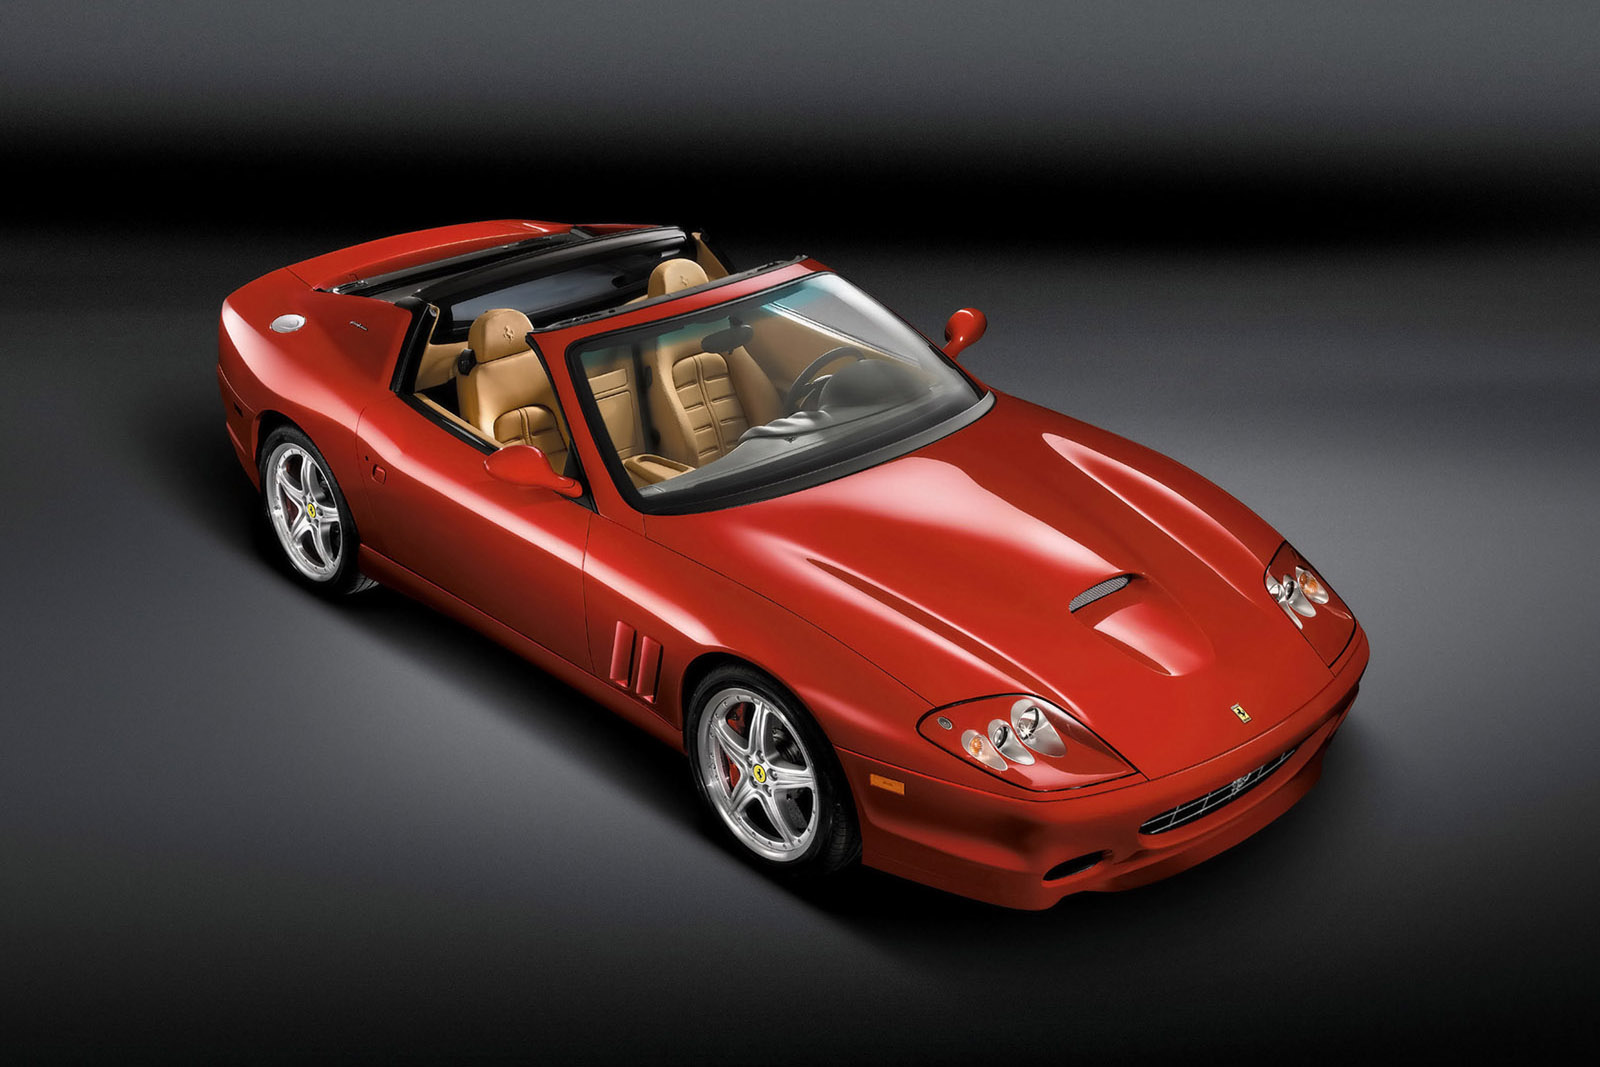 Ferrari 575 Superamerica The most awaited Ferrari coach built by Pininfarina